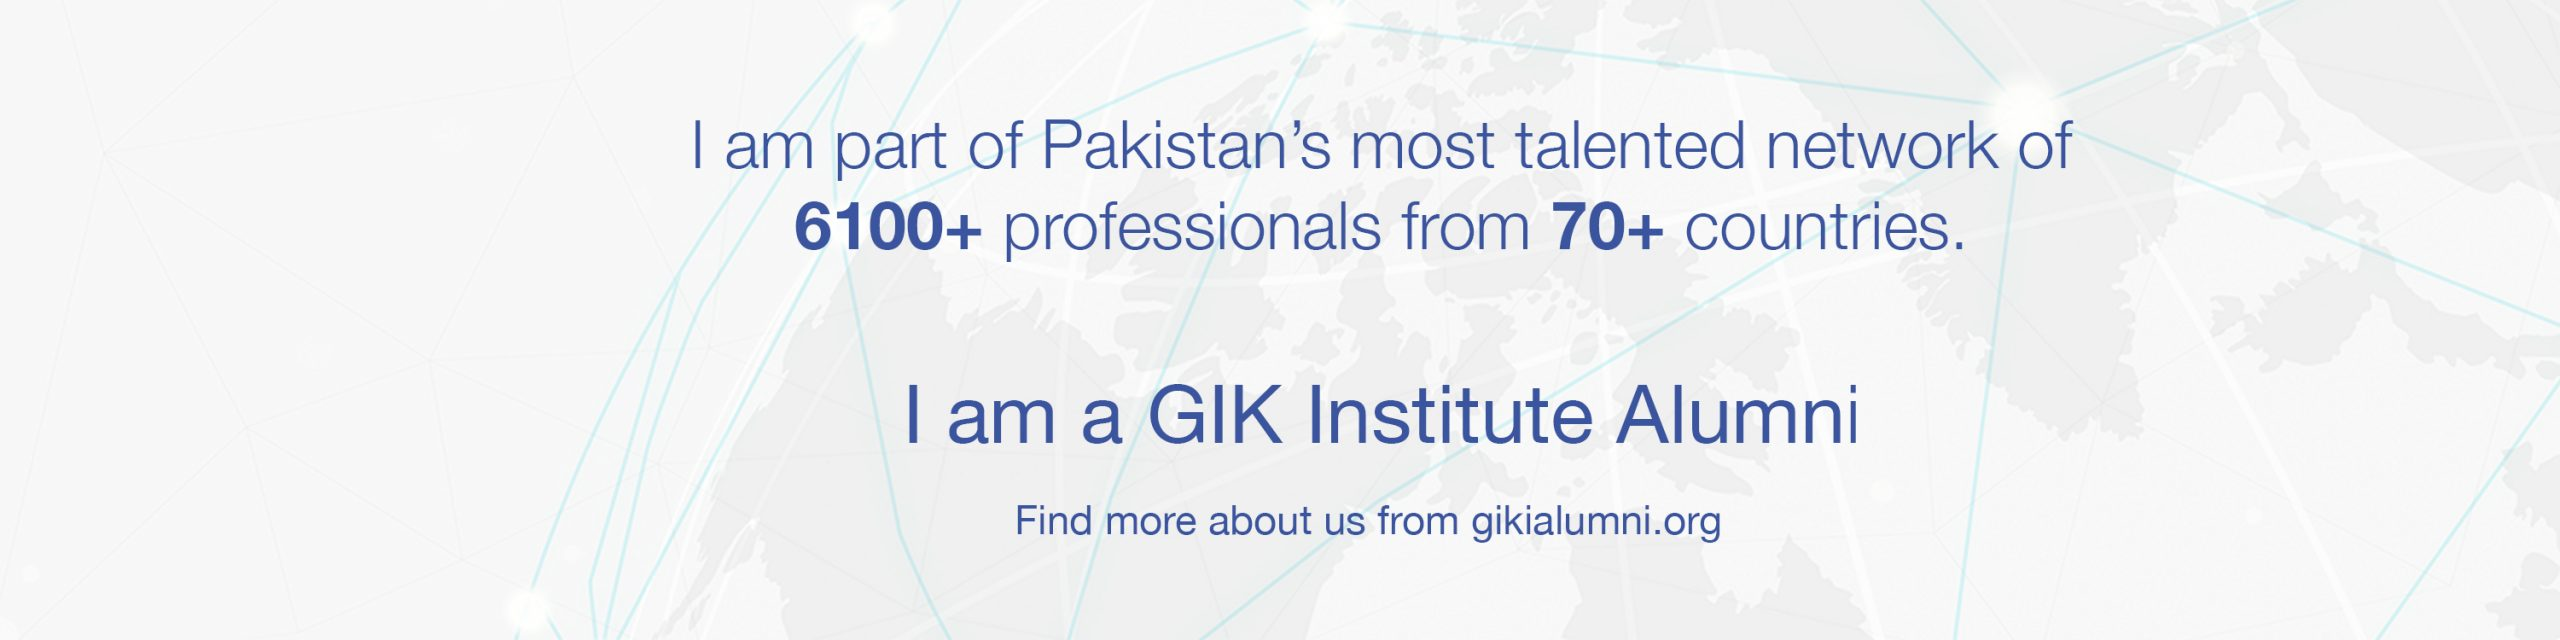 A LinkedIn Cover Photo that highlights the pride that the GIKIAA network holds